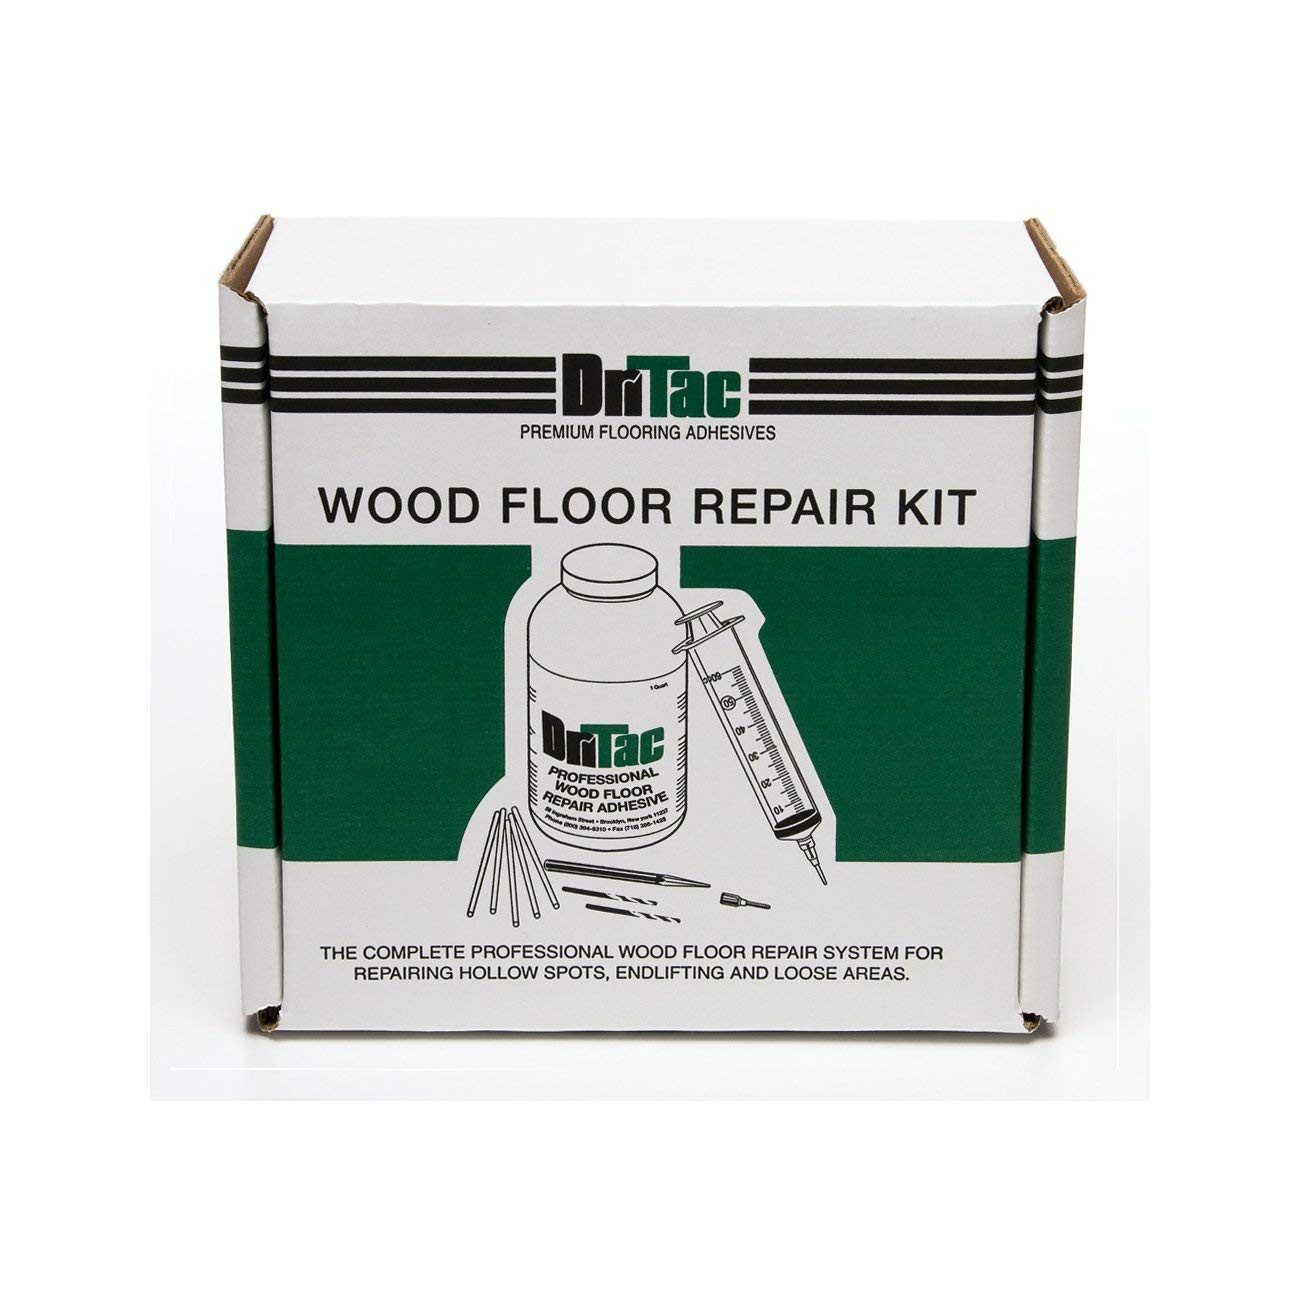 bruce hardwood floor cleaner kit of amazon com dritac wood floor repair kit engineered flooring only inside amazon com dritac wood floor repair kit engineered flooring only 32oz home kitchen